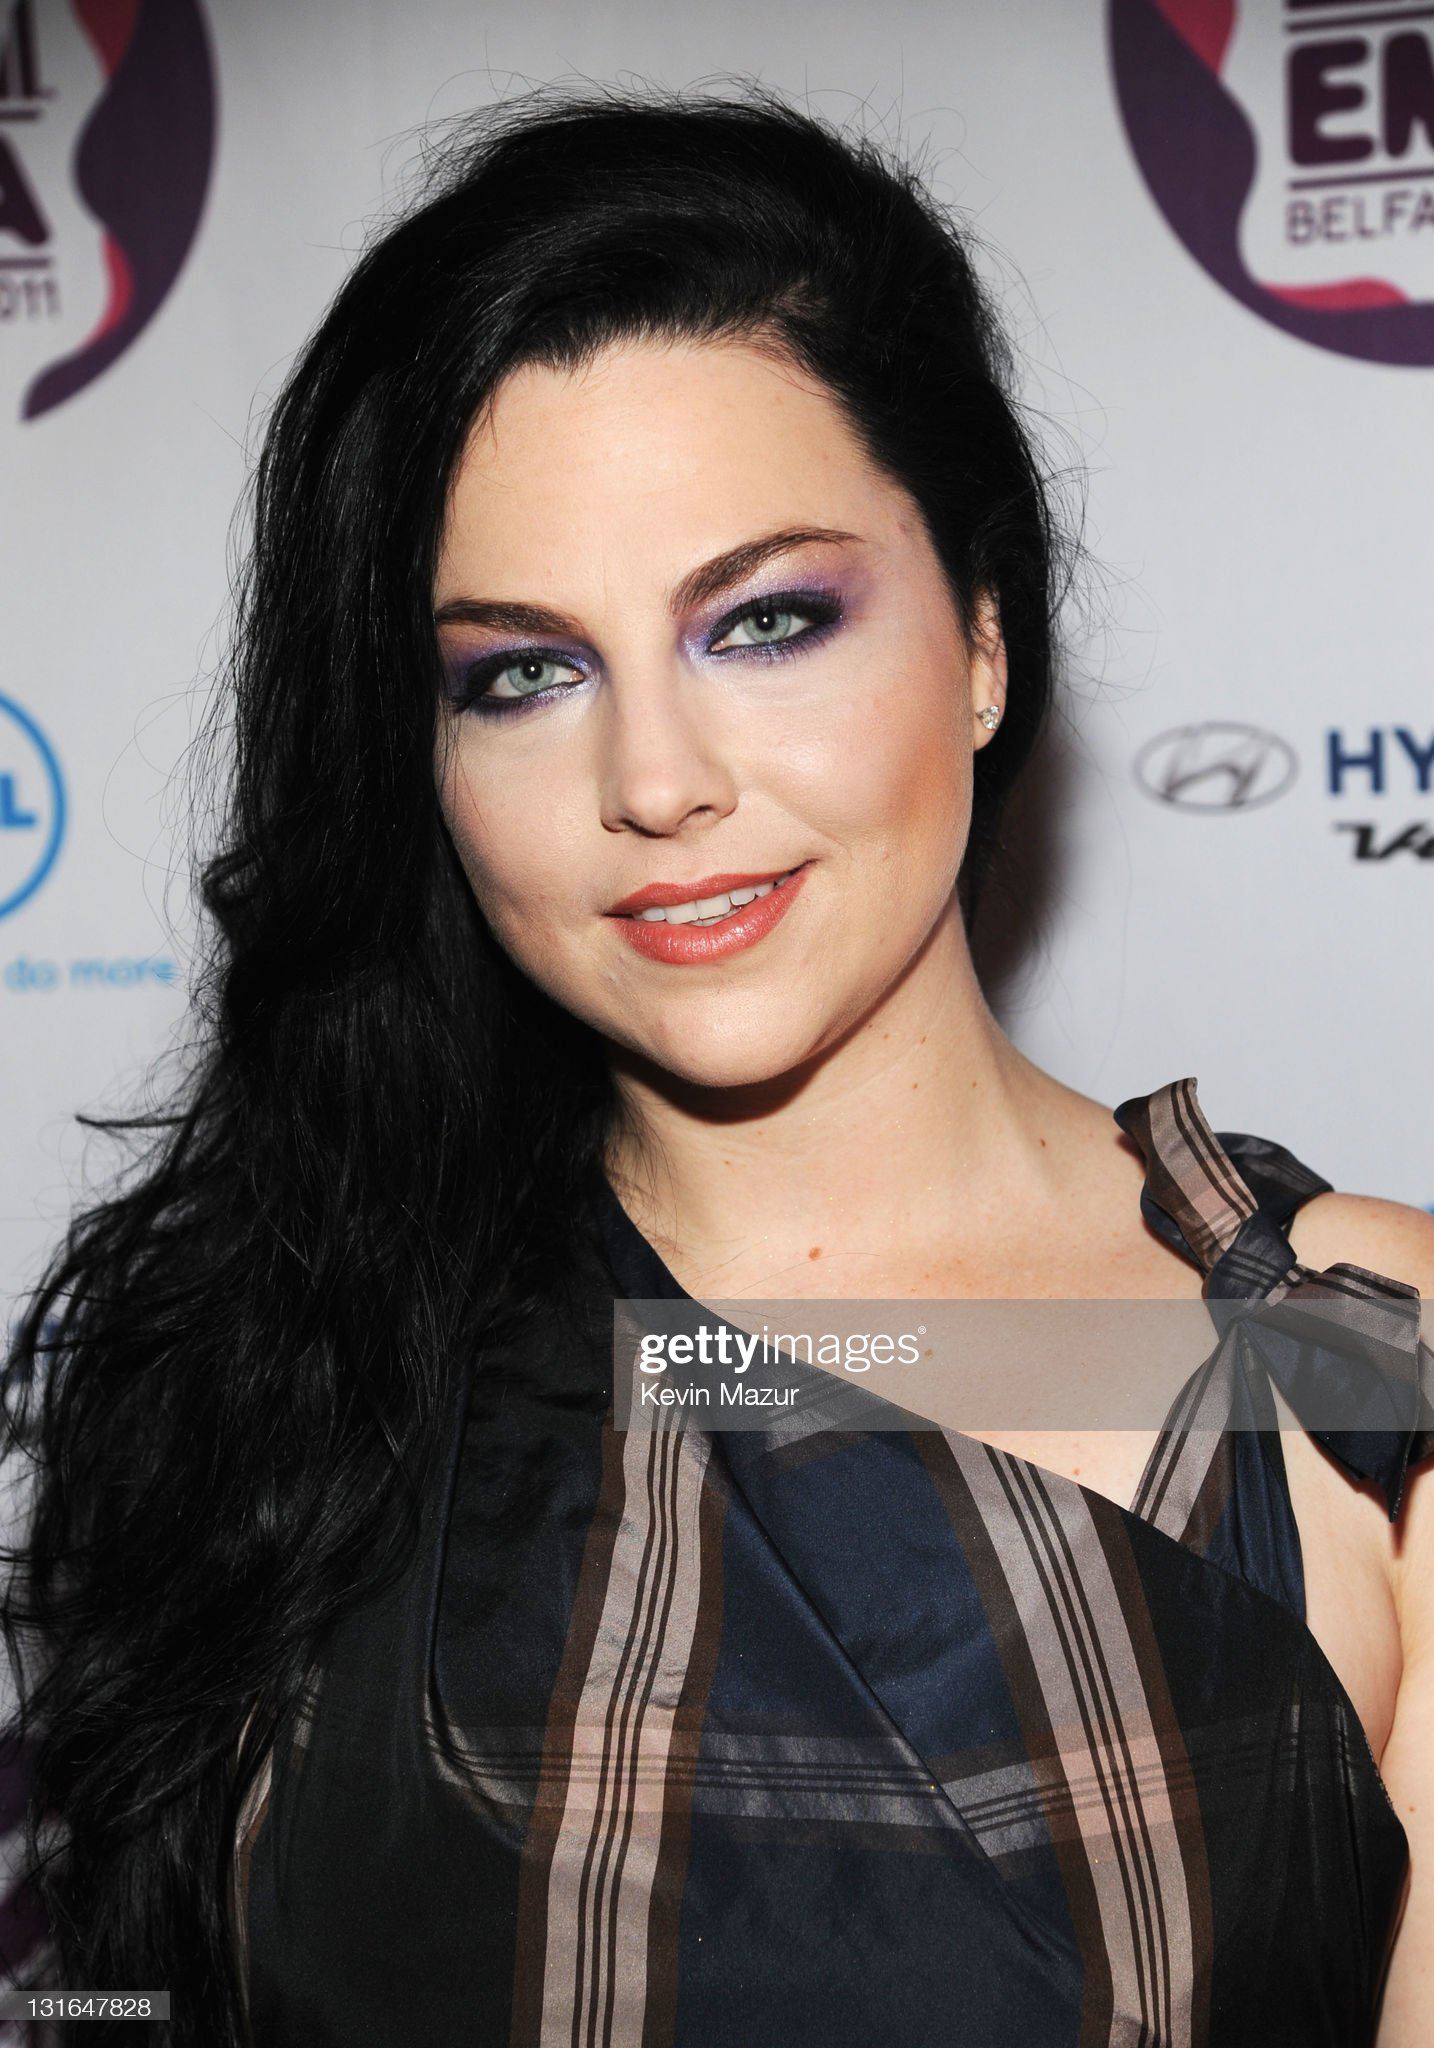 DEBATE sobre guapura de famosos y famosas - Página 5 Singer-amy-lee-of-evanescence-attends-the-mtv-europe-music-awards-at-picture-id131647828?s=2048x2048